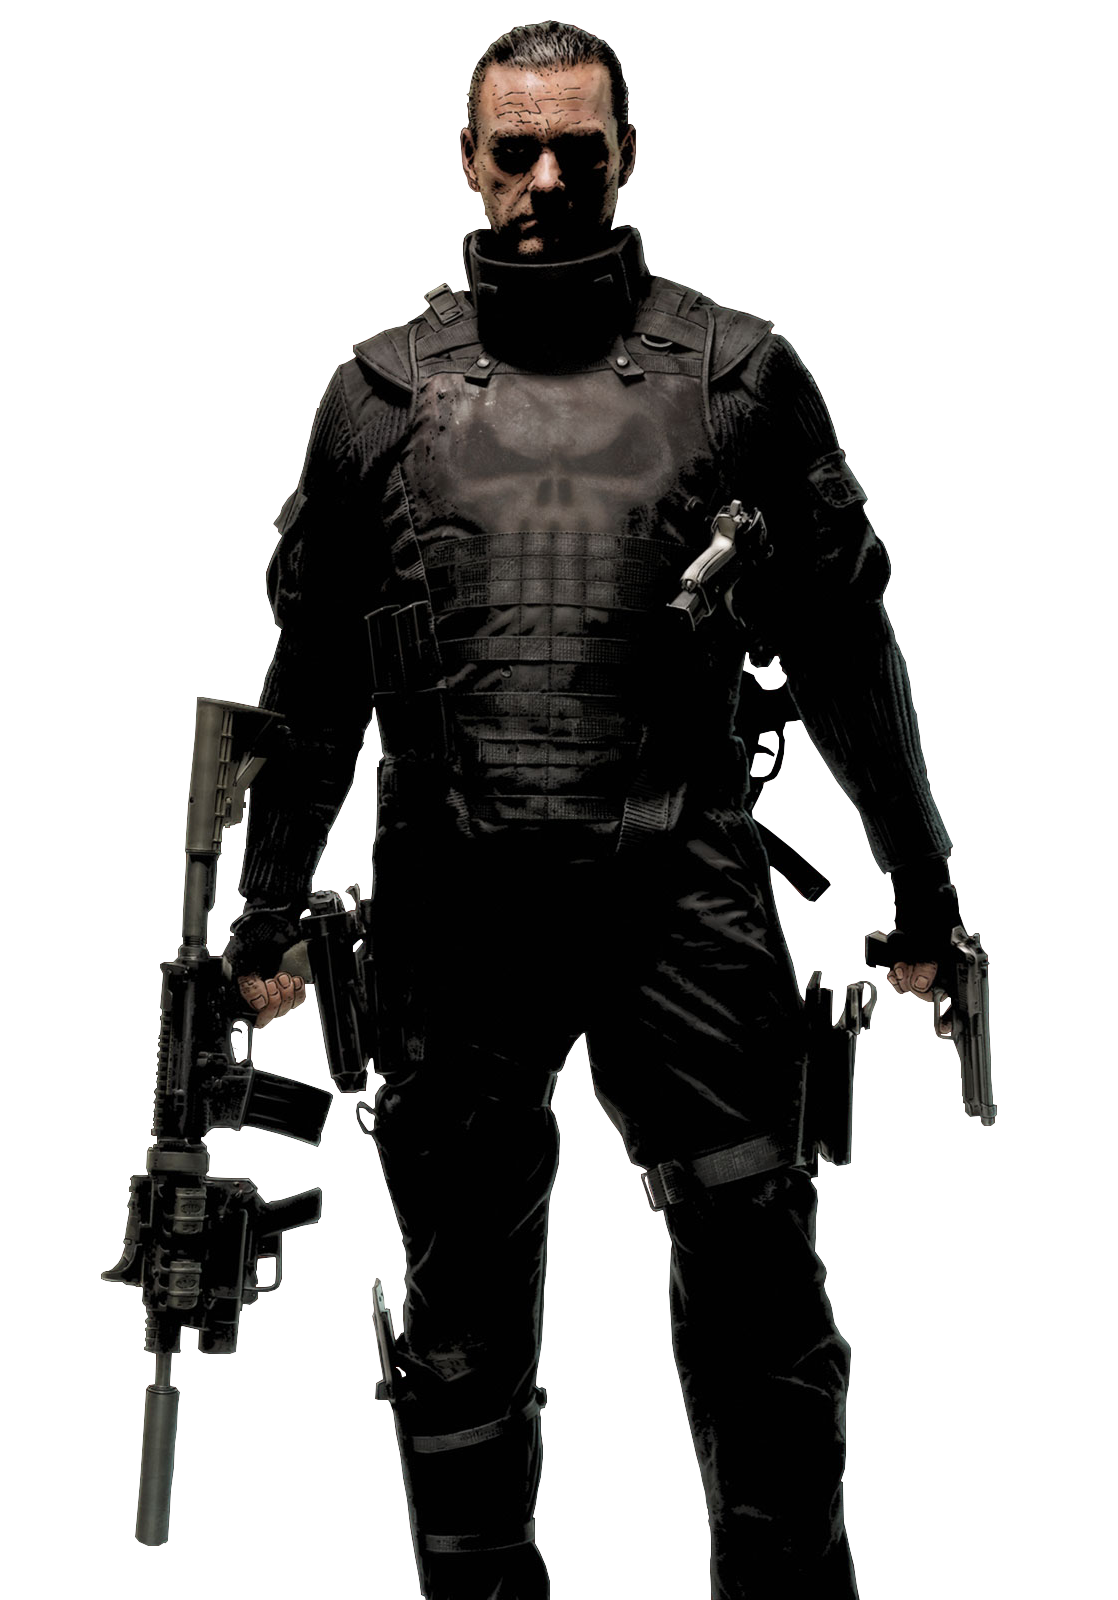 Equipment Punisher Protective Daredevil Personal Universe Cinematic PNG Image